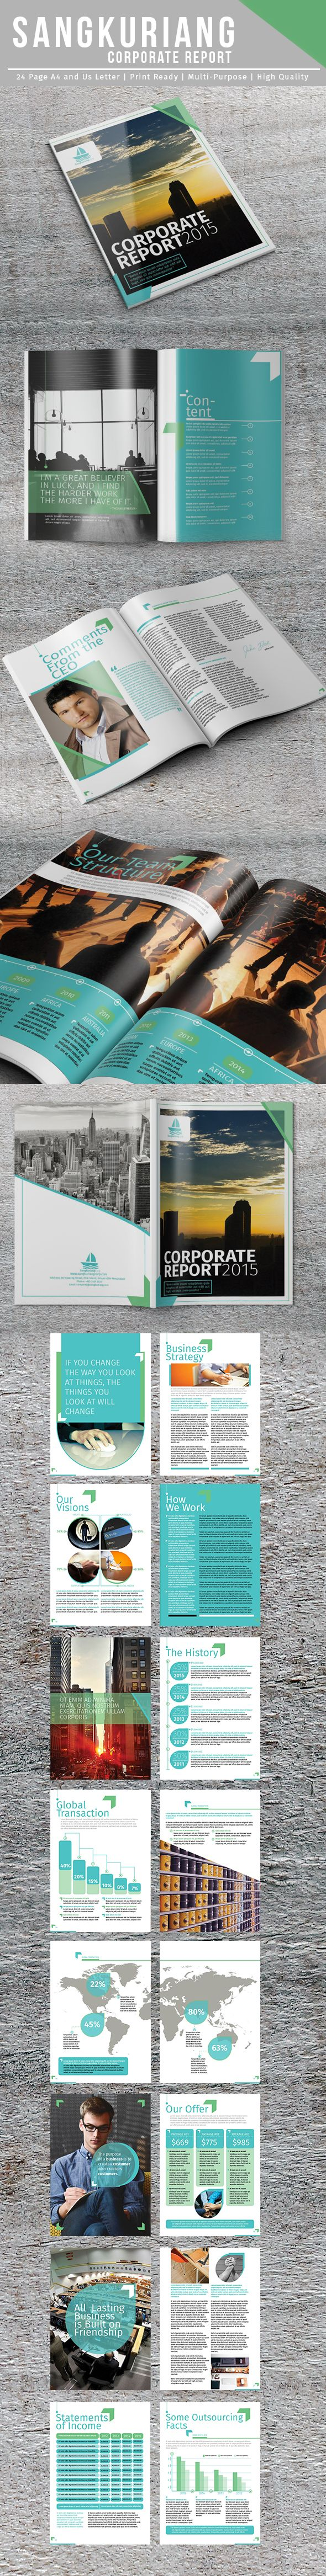 Sangkuriang Corporate Report on Behance